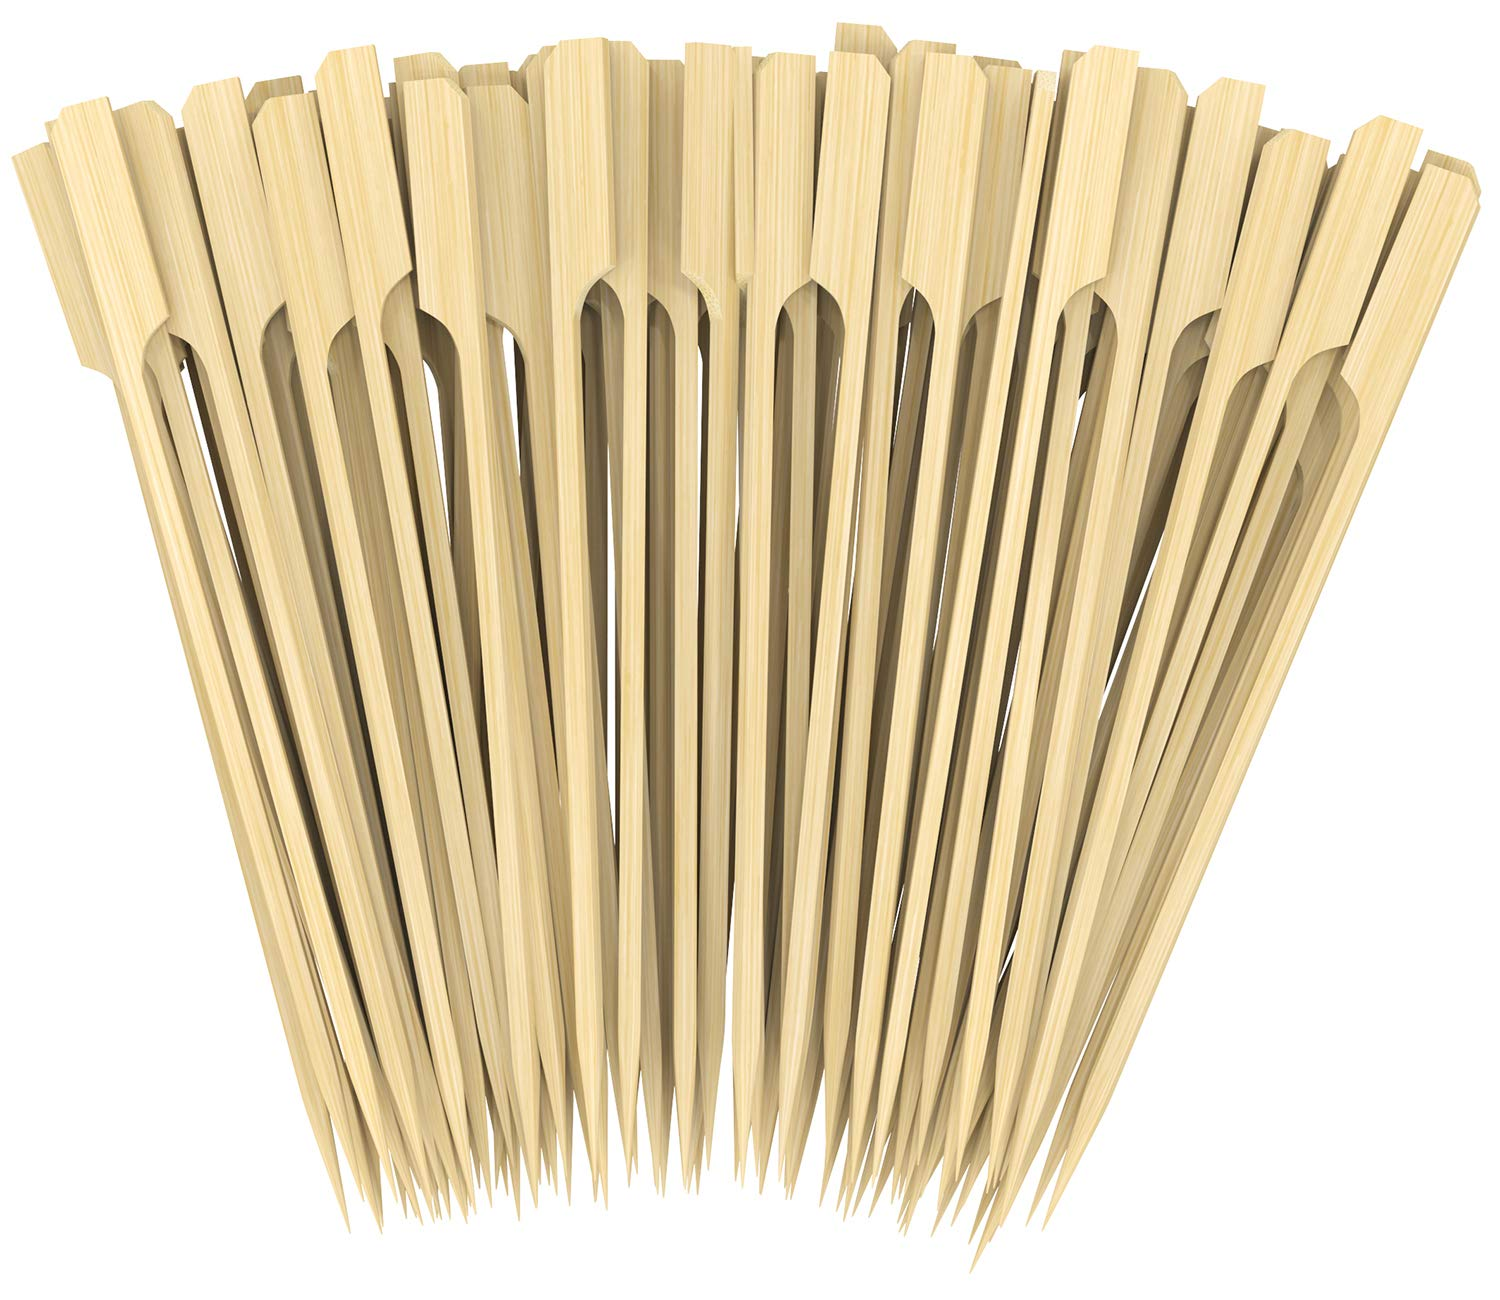 CandyHome Natural Bamboo Picks Paddle Skewers Bamboo Appetizer Skewers Food Grade Cocktail Picks, Grilling, Marshmallows, Fondue, Dessert, Fruit, Sausage and More, 7 Inch 200 Pack by CandyHome